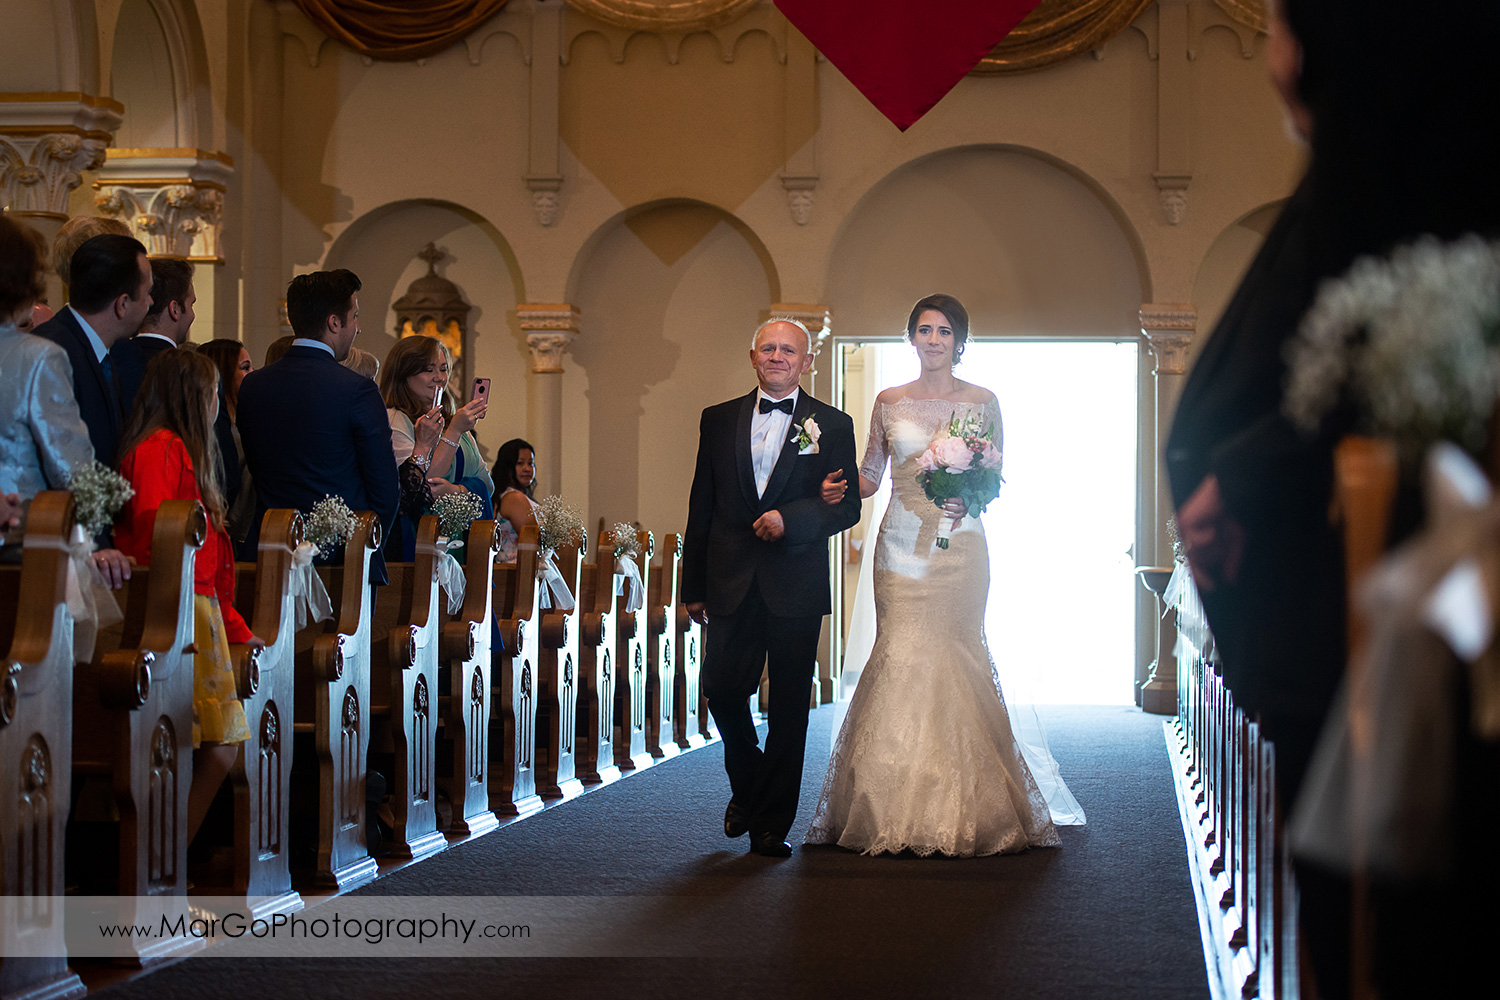 bride and her father walking down the aisle during wedding ceremony at Oakland Church of Saint Leo the Great